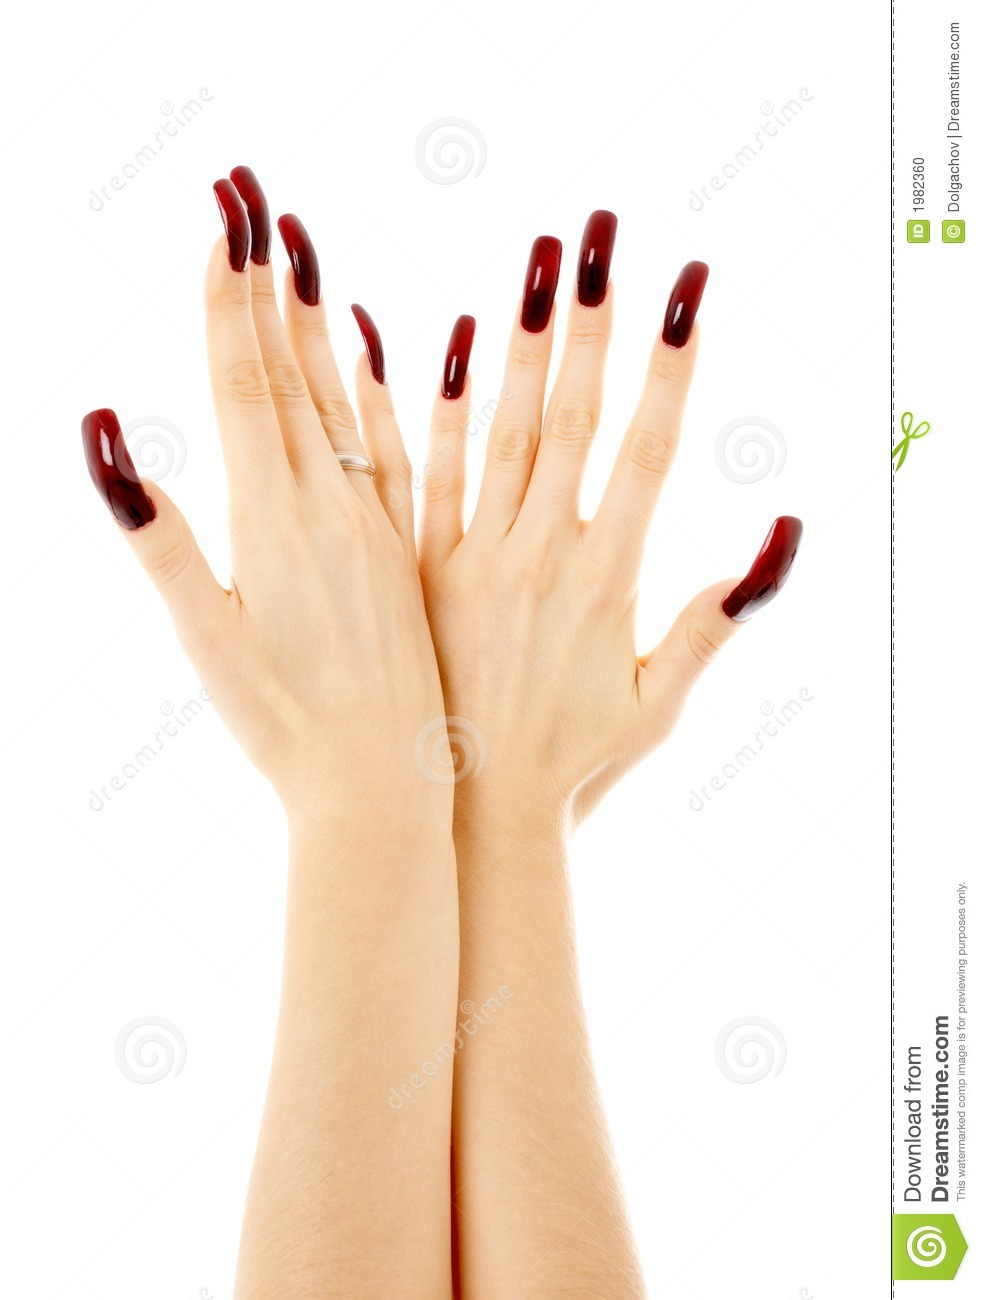 Two Hands With Long Acrylic Nails Stock Photo.